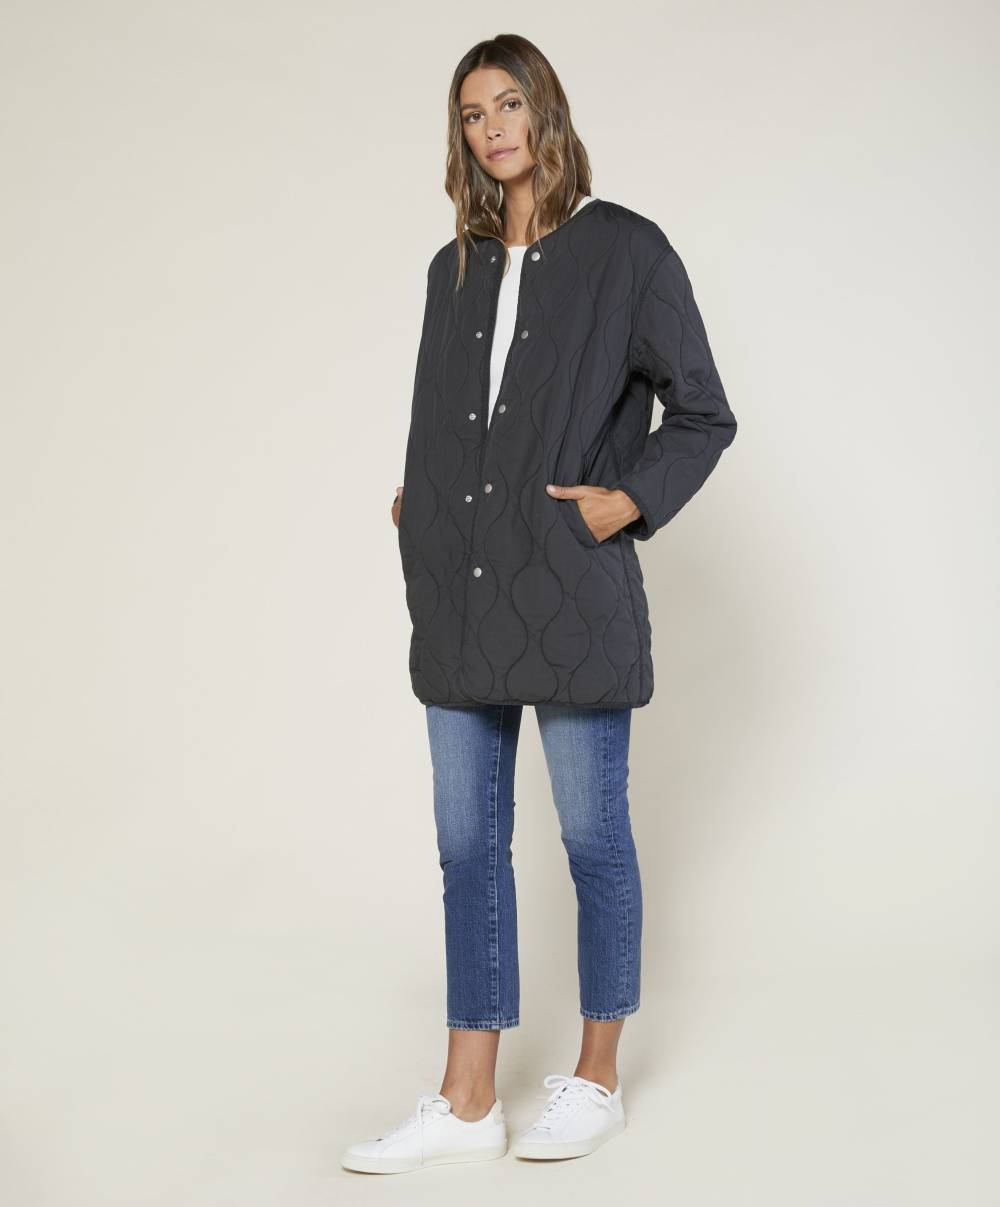 outerknown best investment clothing pieces